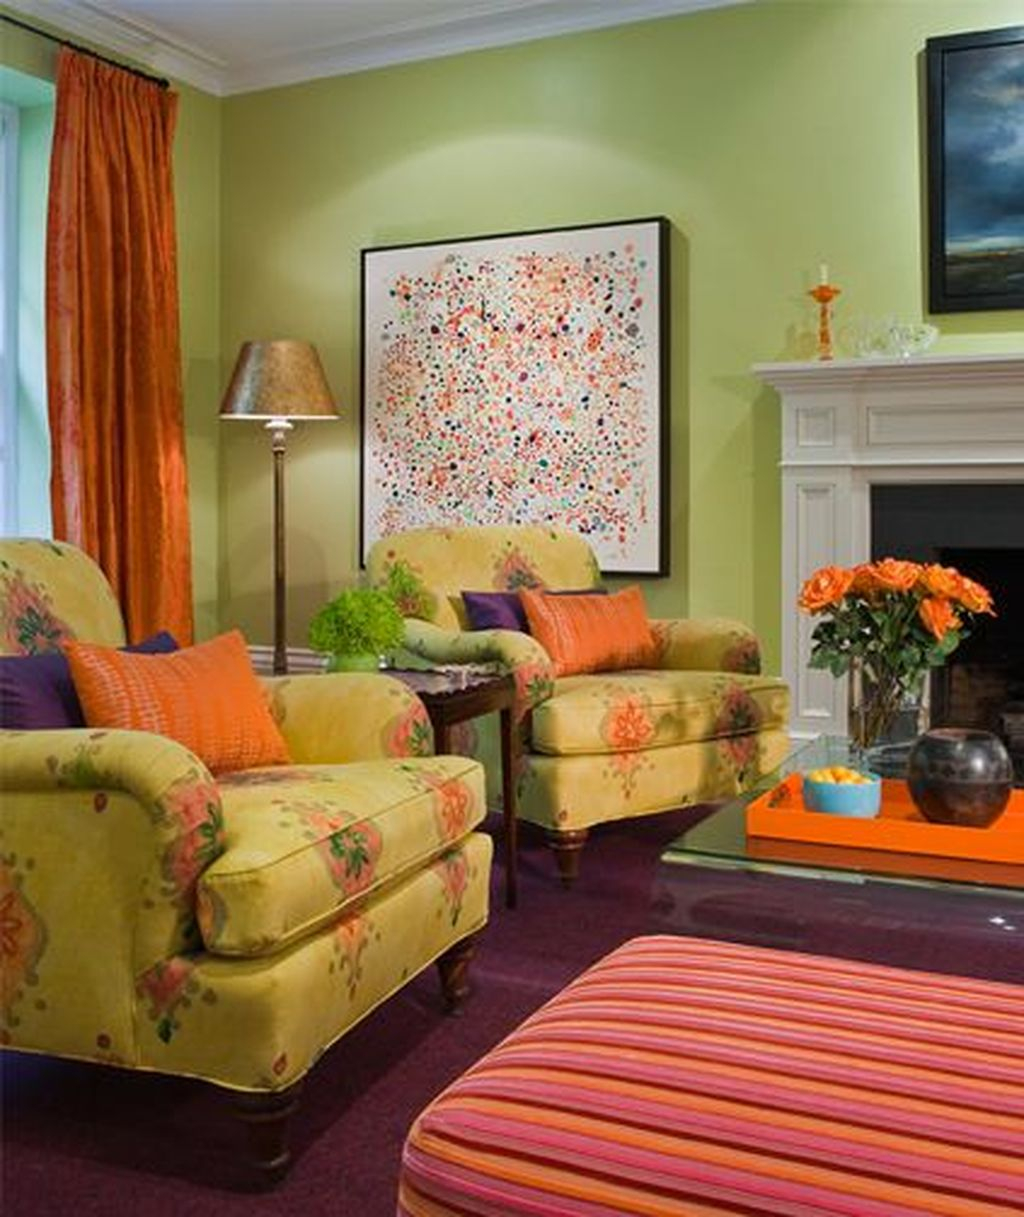 Living Room Schemes 41 Inspiring Living Room Color Schemes Ideas Will Make Space